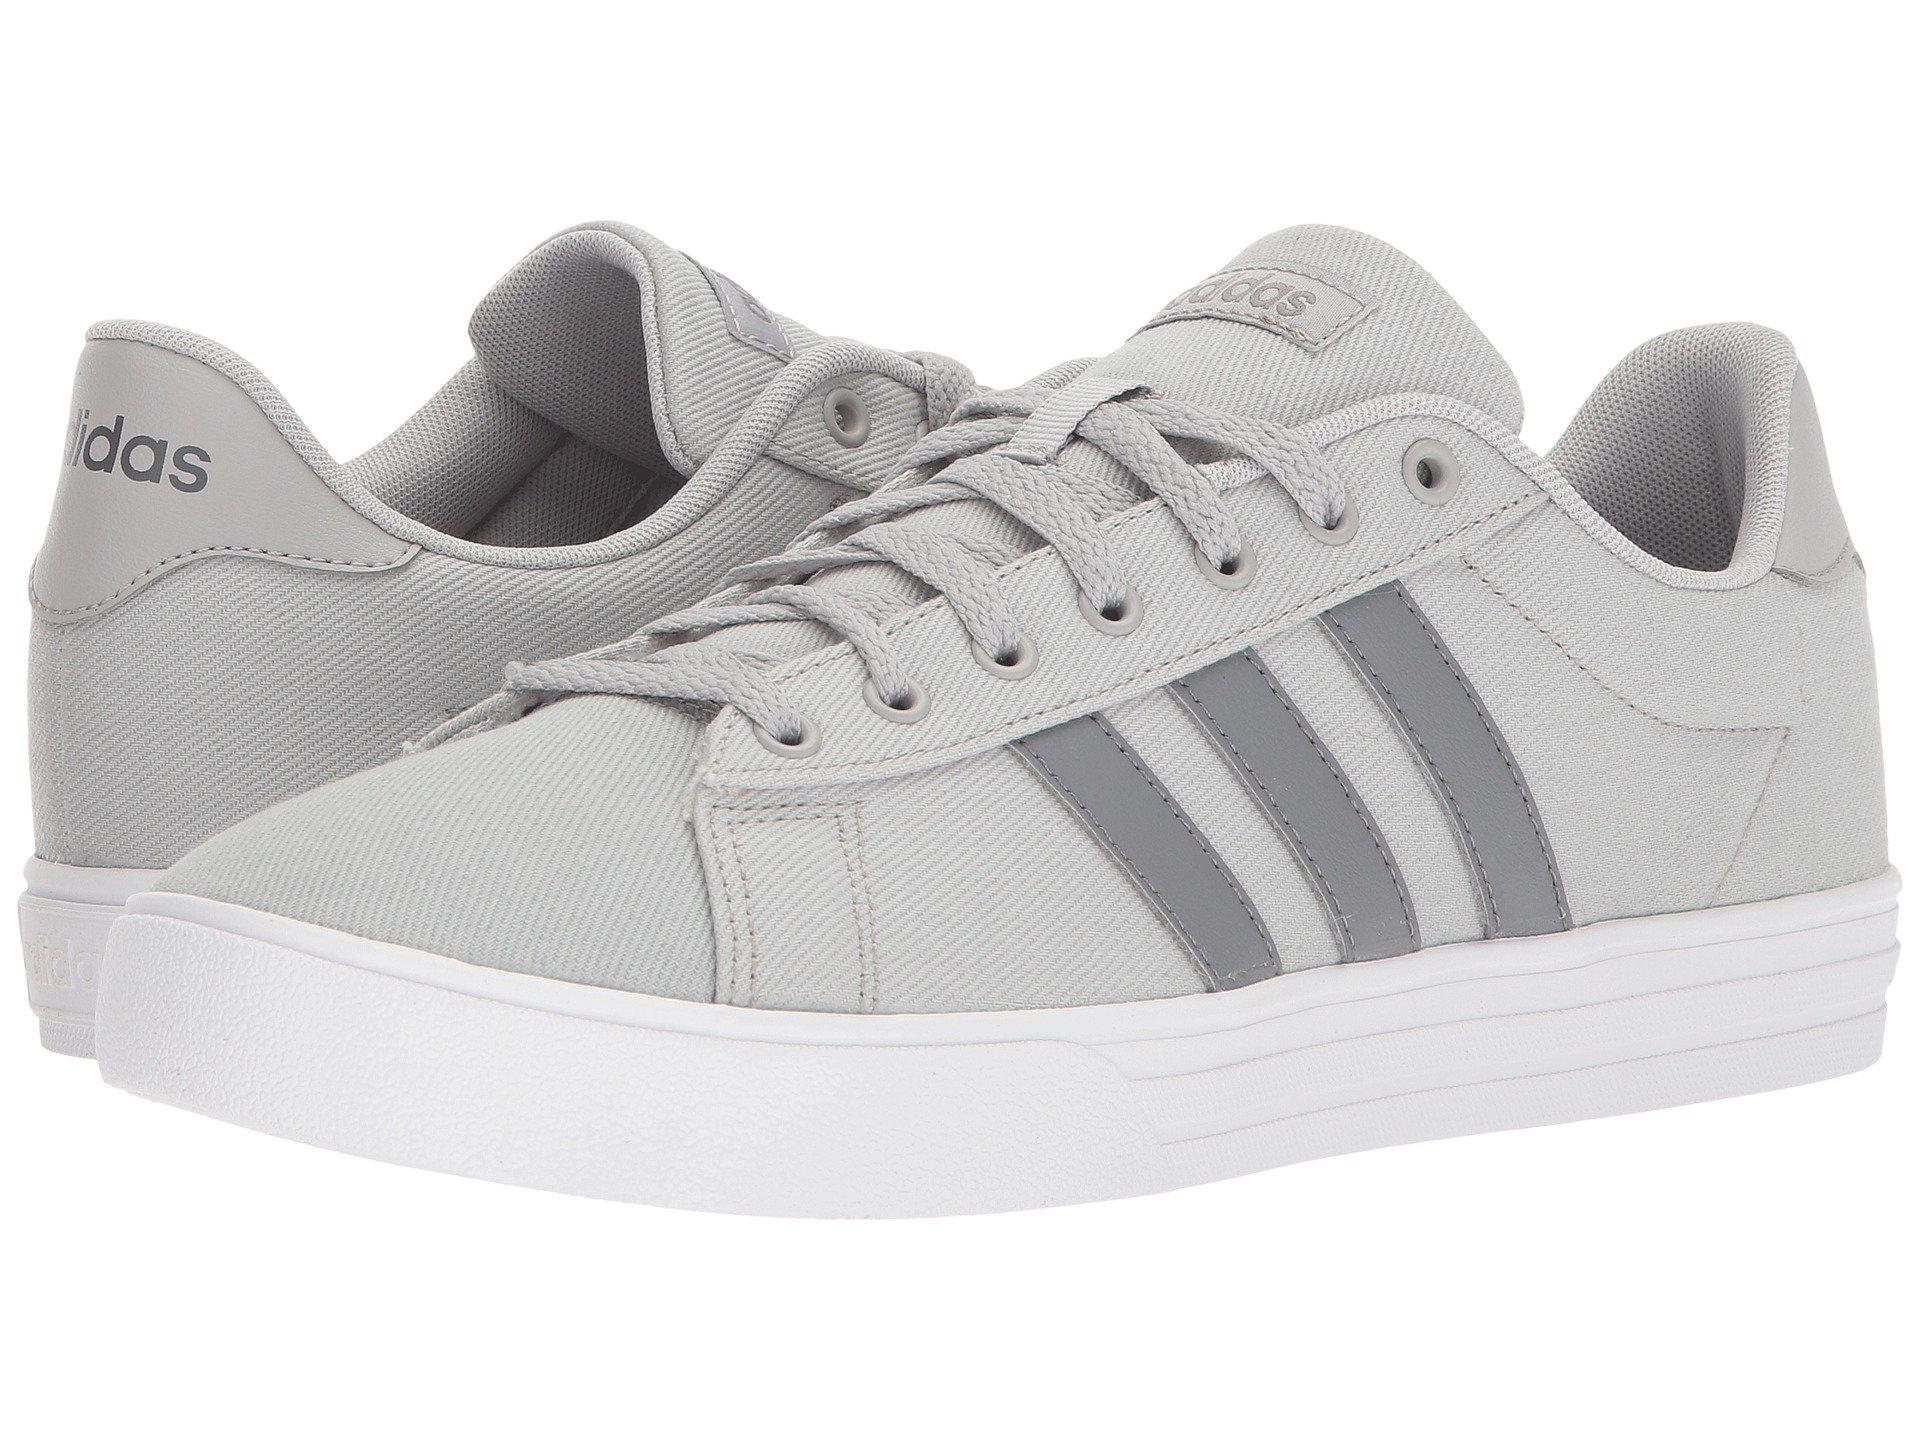 8a5c6771724 Lyst - adidas Daily 2.0 in Gray for Men